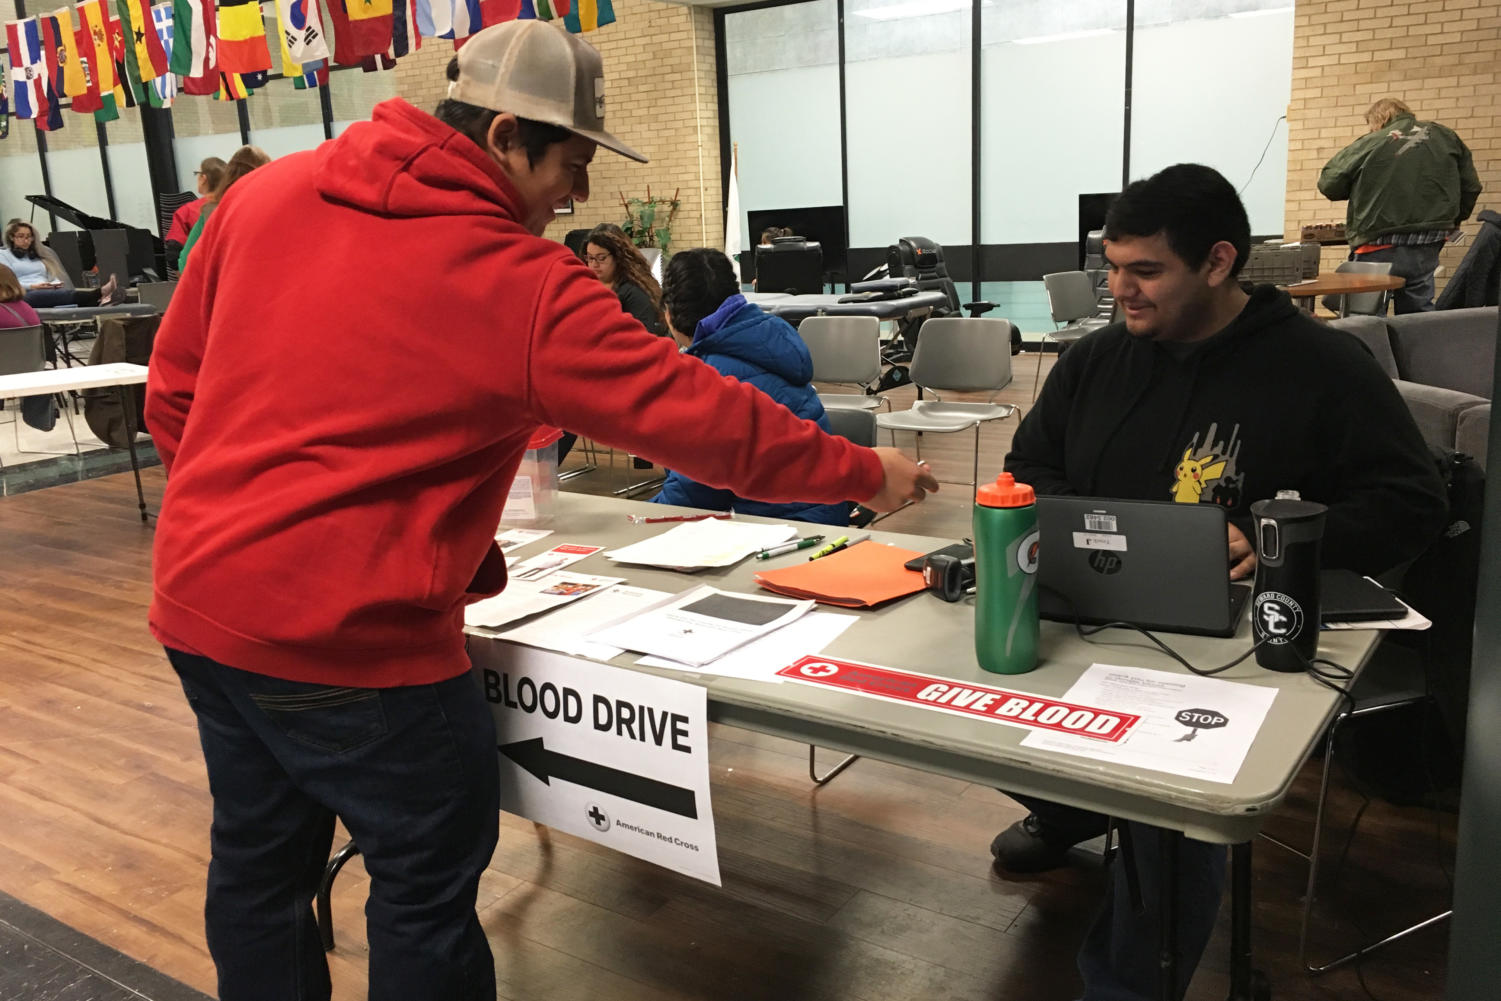 Adan Gonzalez is working as a volunteer at the blood drive. Jonathan Ibarra  is signing in to donate blood and save lives.